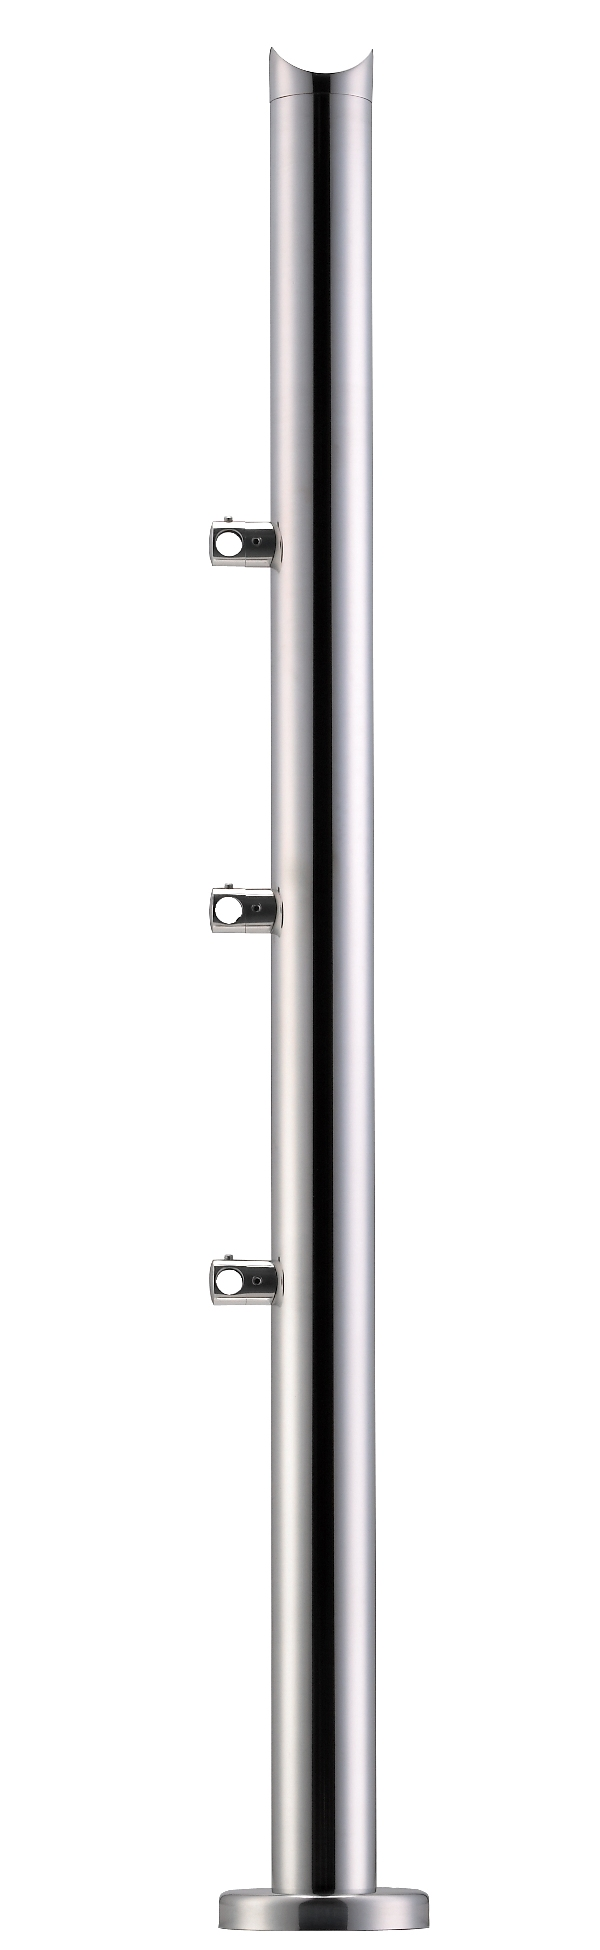 Stainless Steel Balustrade Posts - Tubular - SS:2020377A